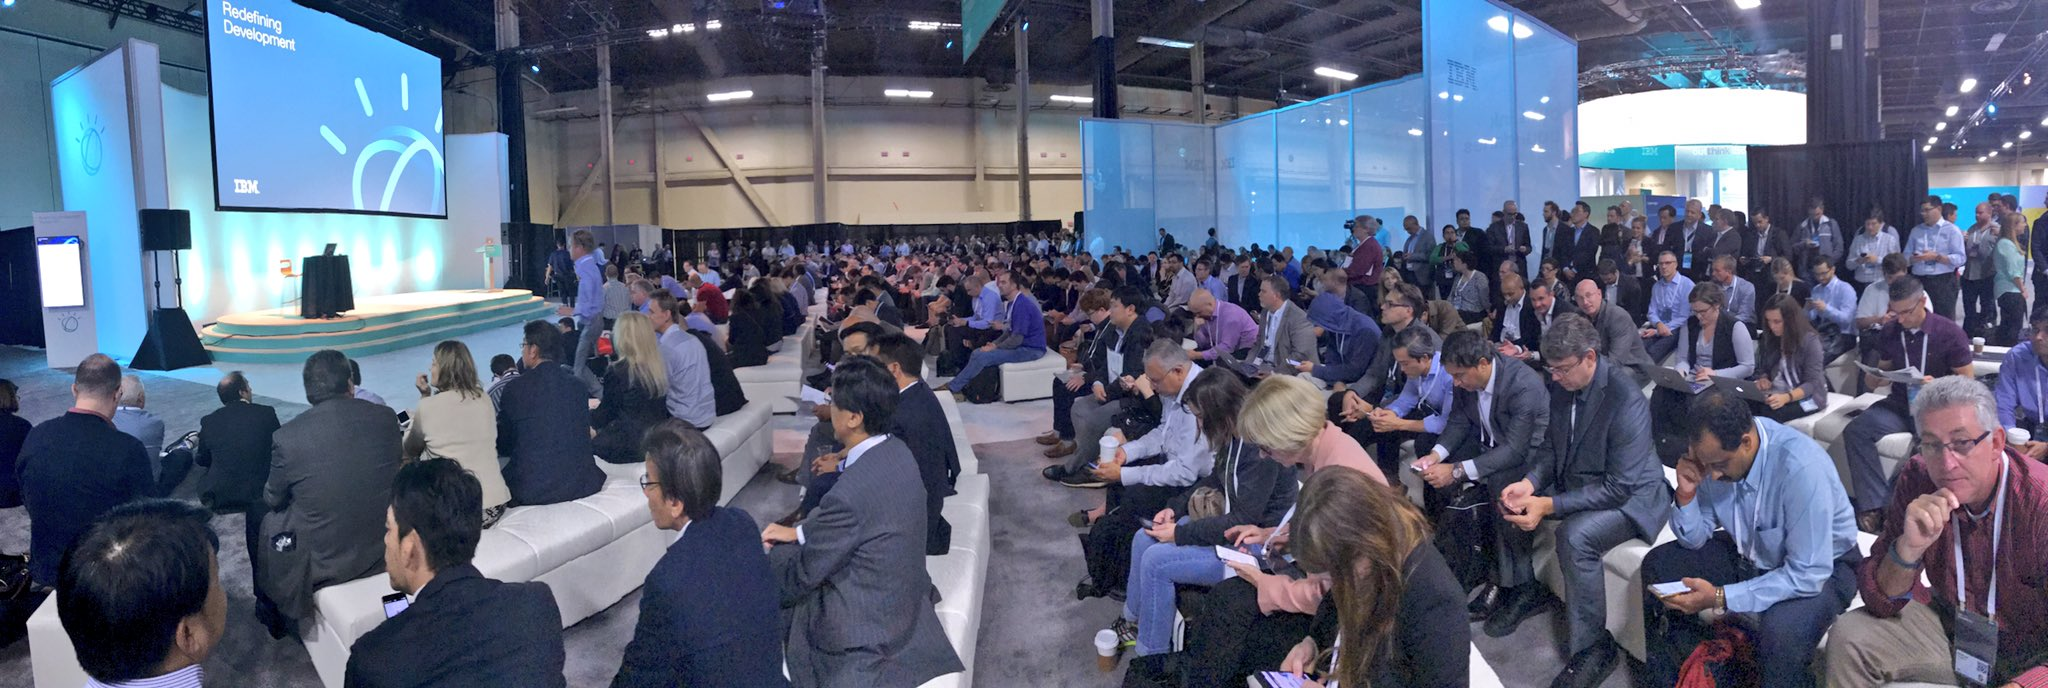 Packed house for @IBM CDO @rwlord presentation on Developing for a cognitive era!  #IBMwow #WatsonMarketing #cognitivecomputing https://t.co/Dvdp8q0ITO